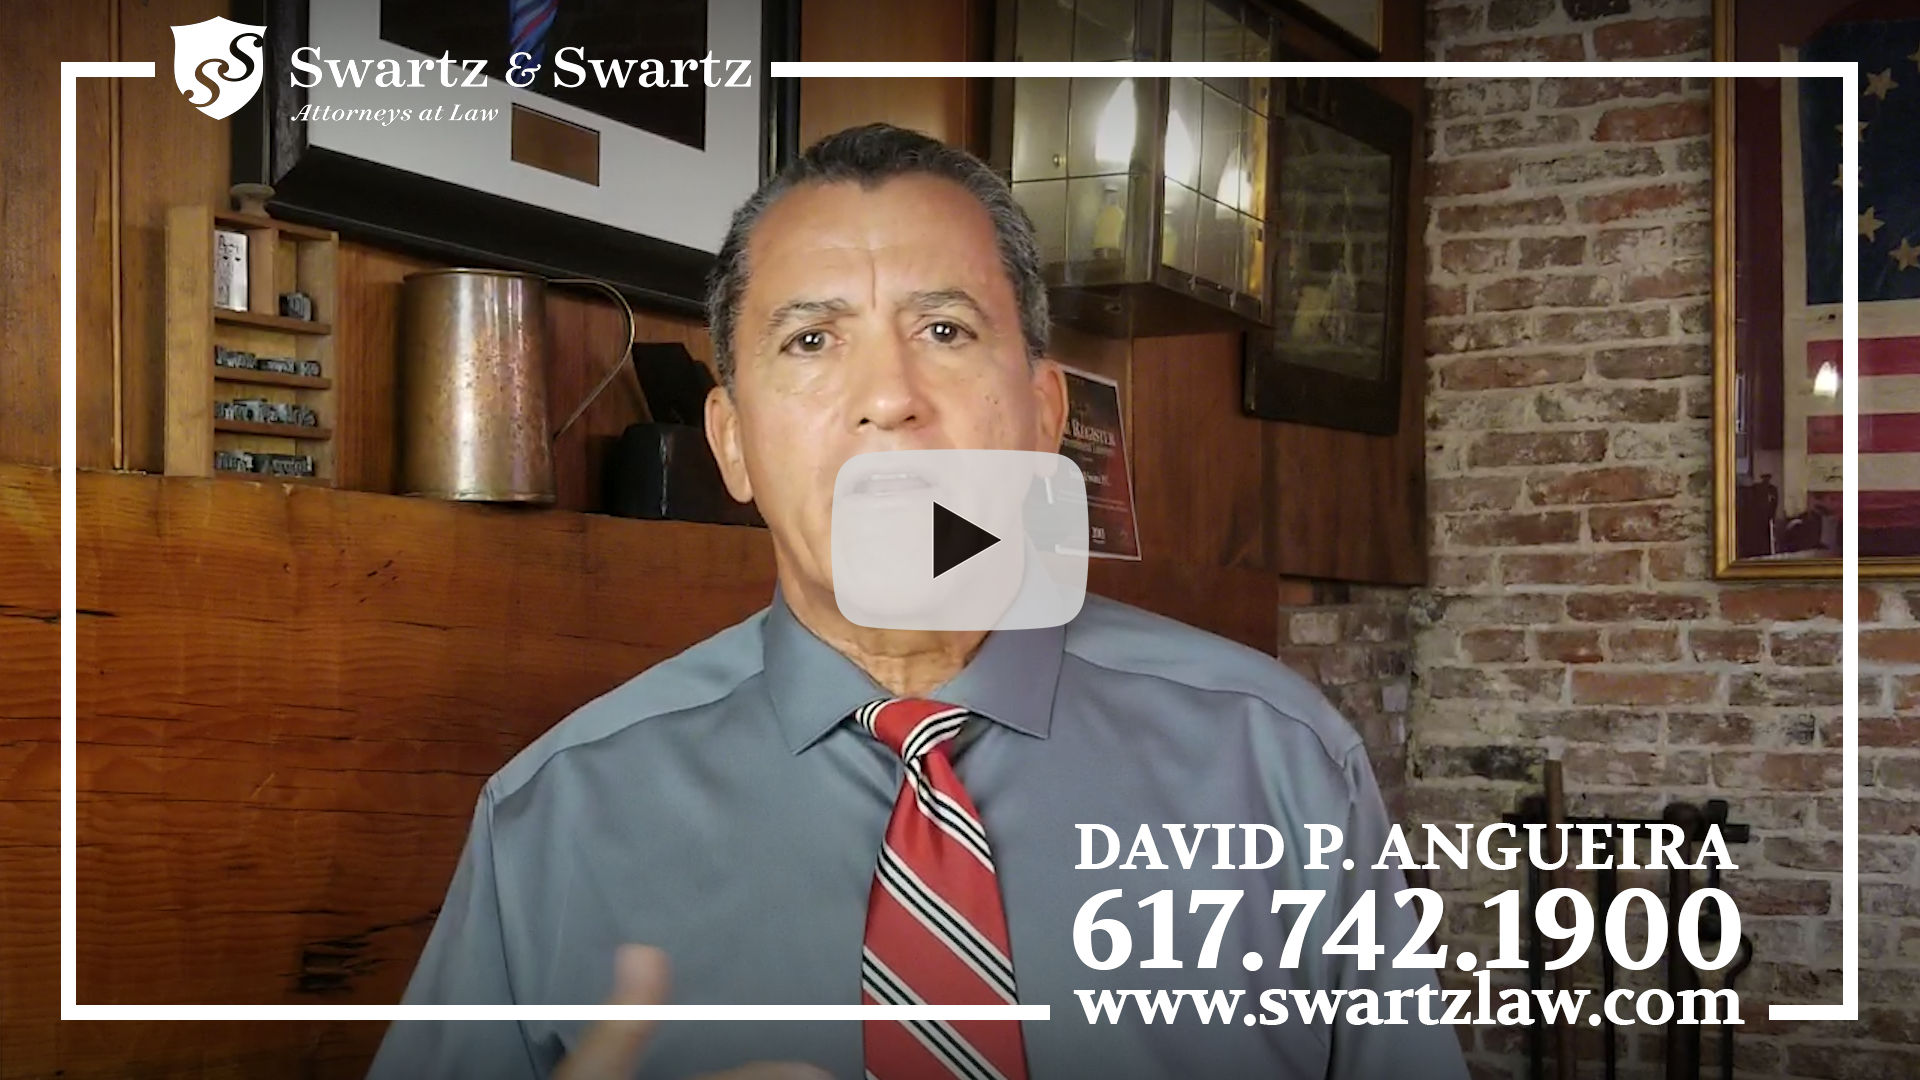 David Angueira Discusses Worker's Compensation & Workplace Injuries